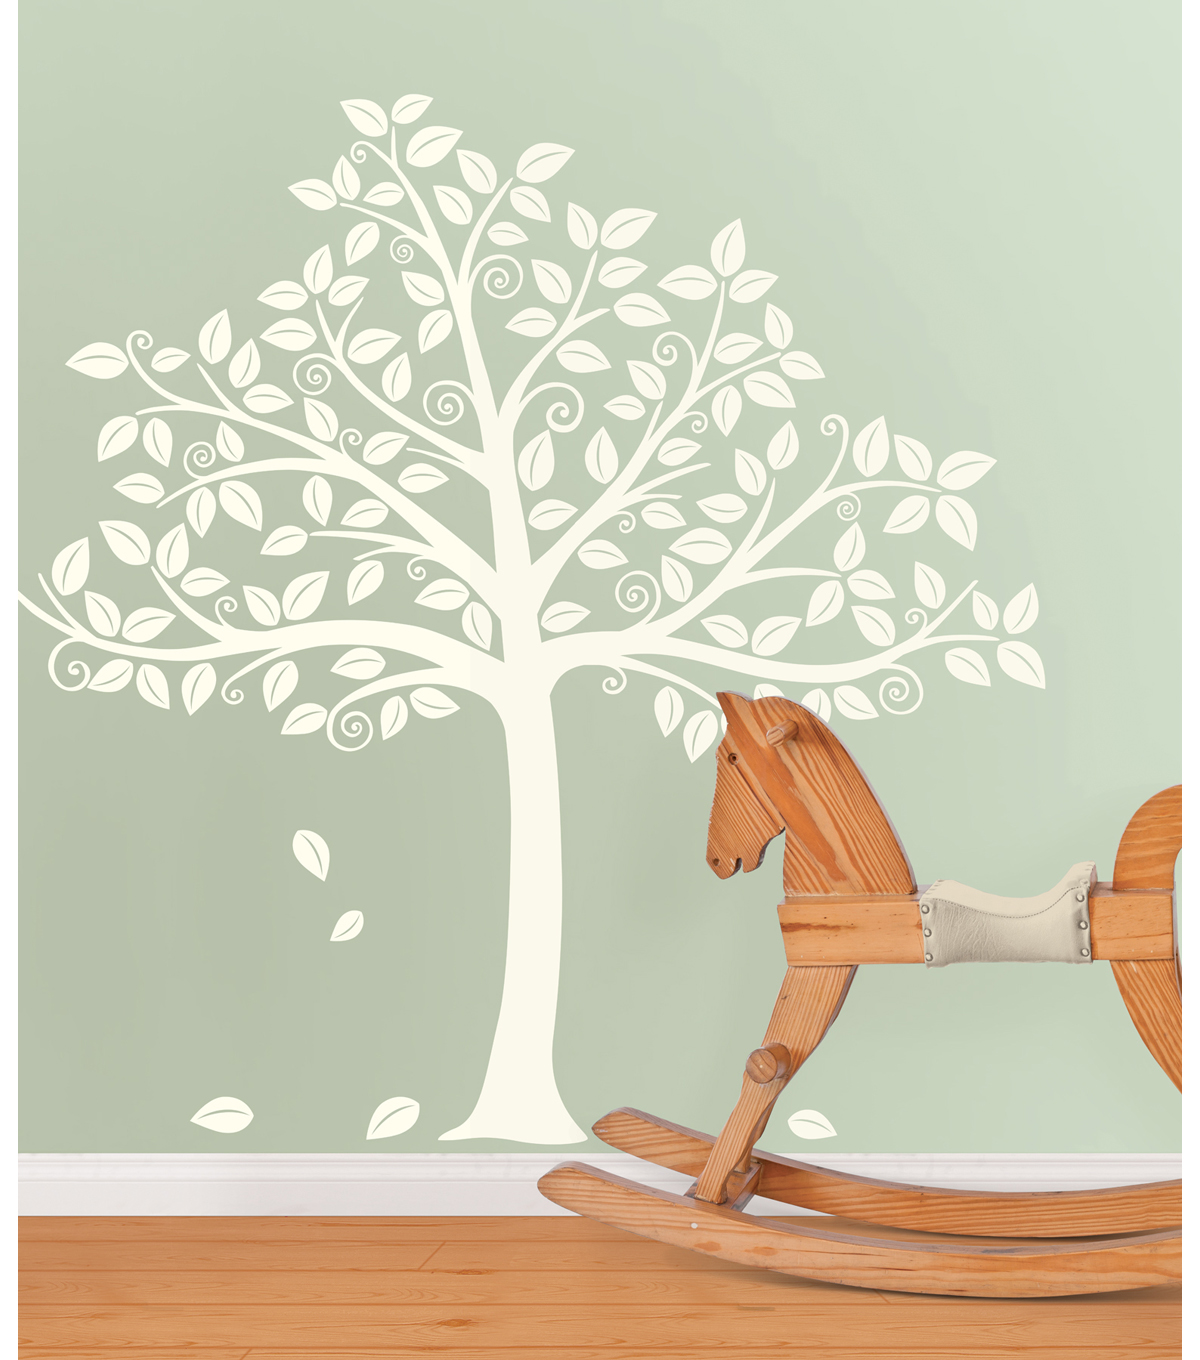 Wall Pops Silhouette Tree Wall Art Decal Kit, 129 Piece Set